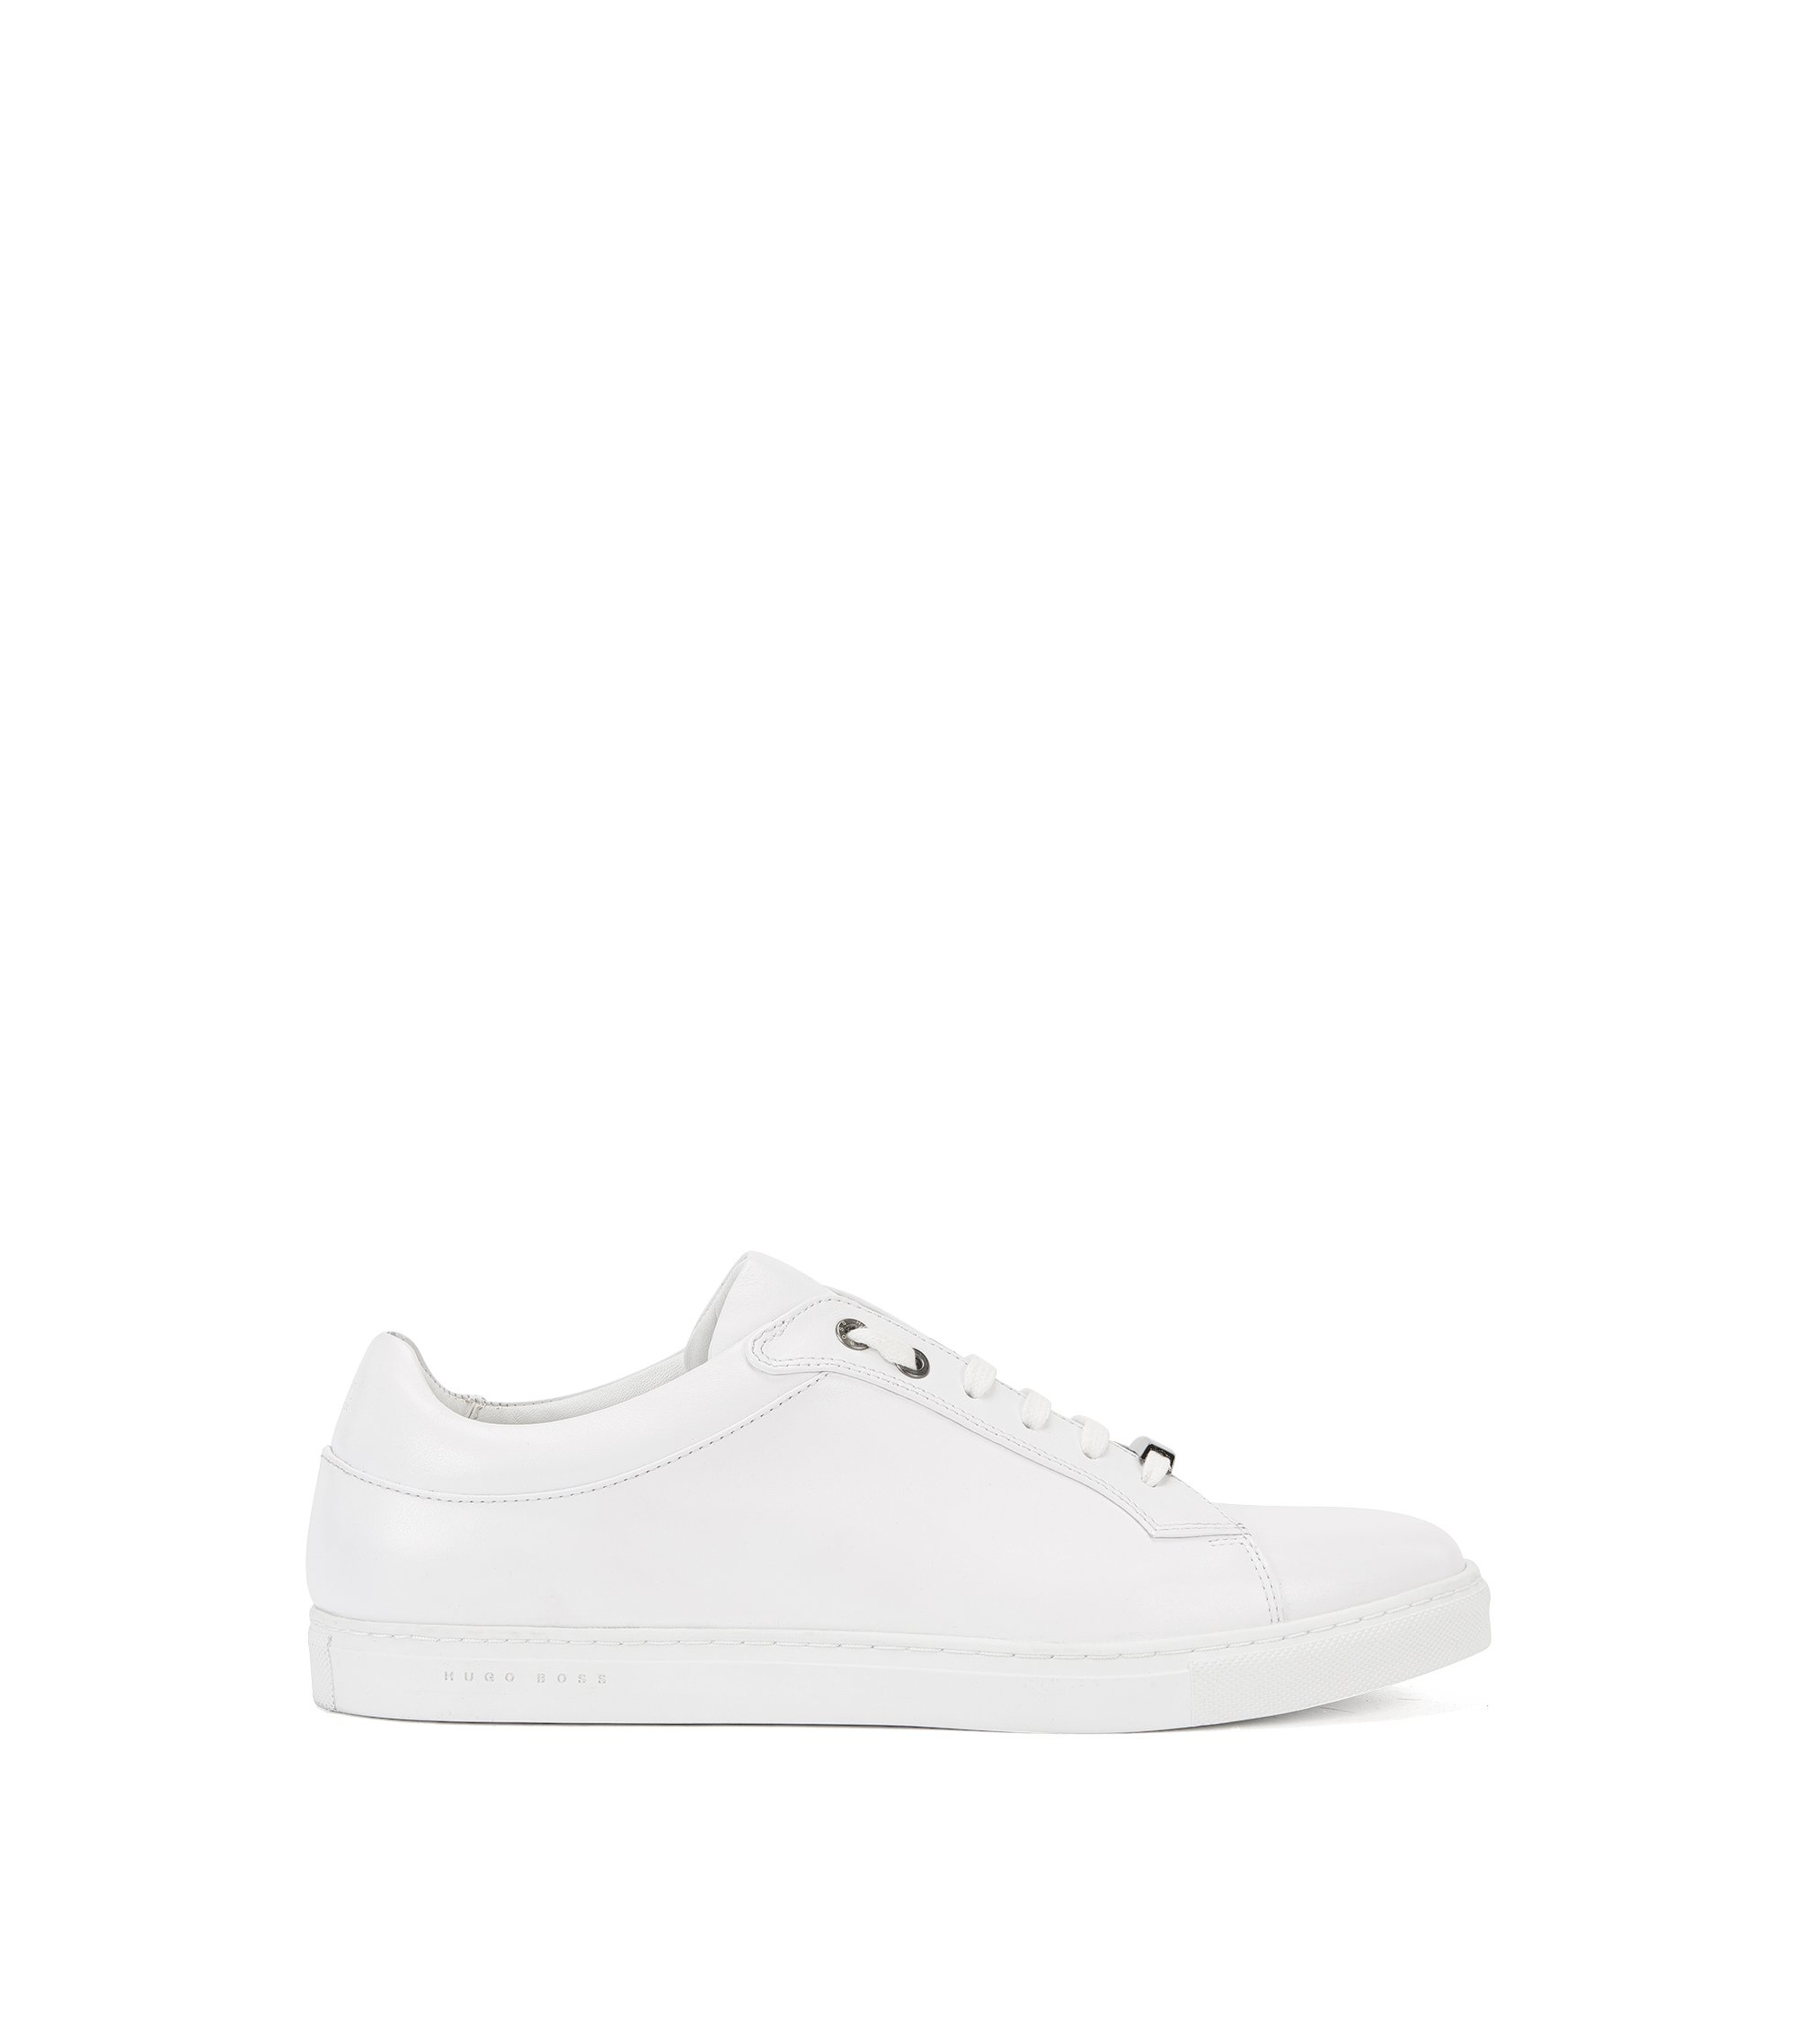 Leather lace-up trainers with branded sole, White